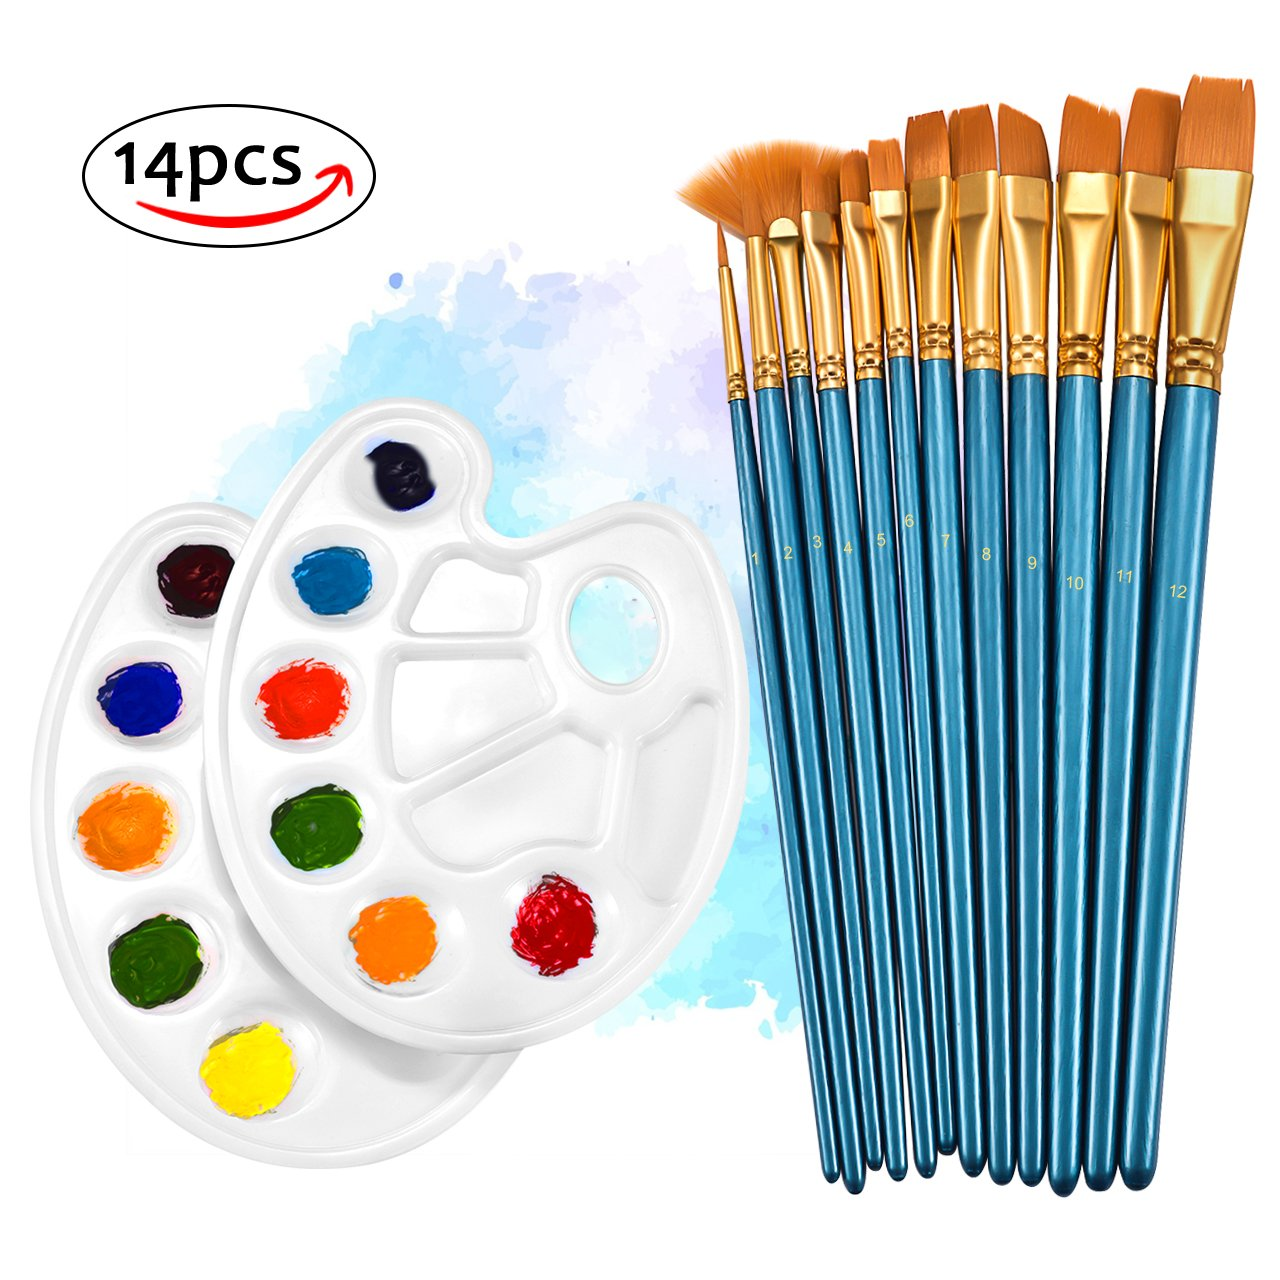 Paint Brushes,TOPELEK 12 Pcs Paint Brush Set With 2 Additional Paint Tray Palettes for Acrylic,watercolor,Craft & oil painting.Great for Beginners, Kids, Artists and Painting Lovers Mpow PAGEAR001AL-V